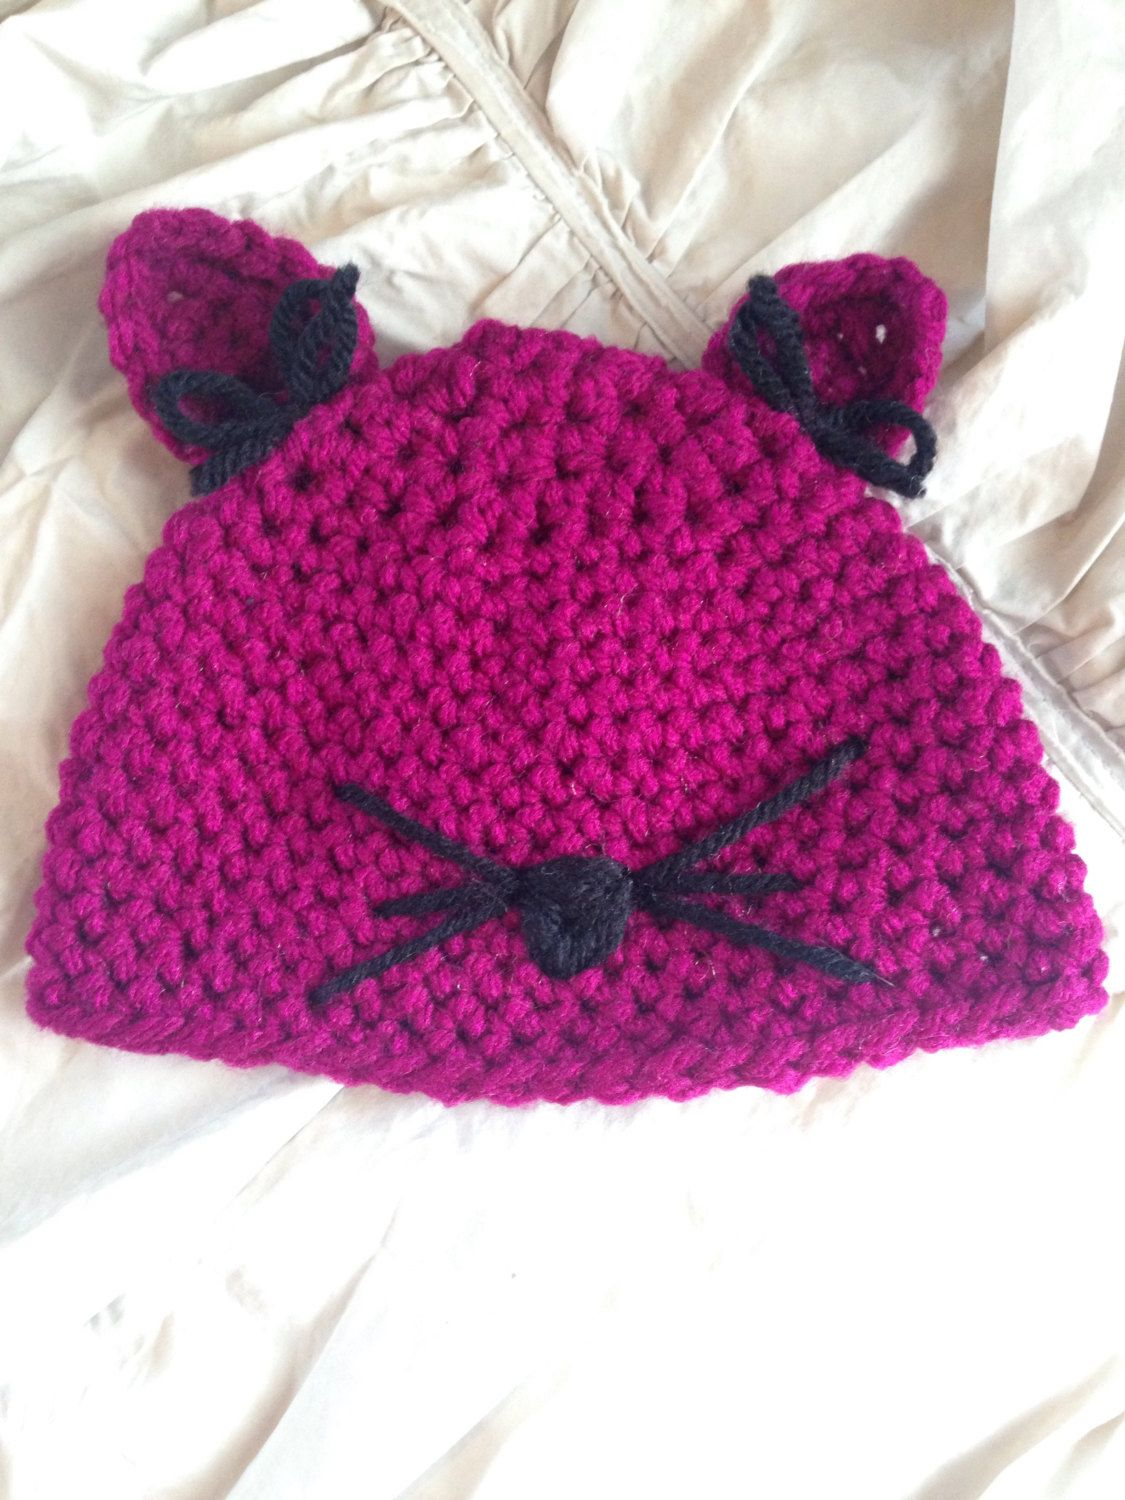 Little kitten beanie by BowsandArrowscrochet on Etsy https://www.etsy.com/listing/235935776/little-kitten-beanie